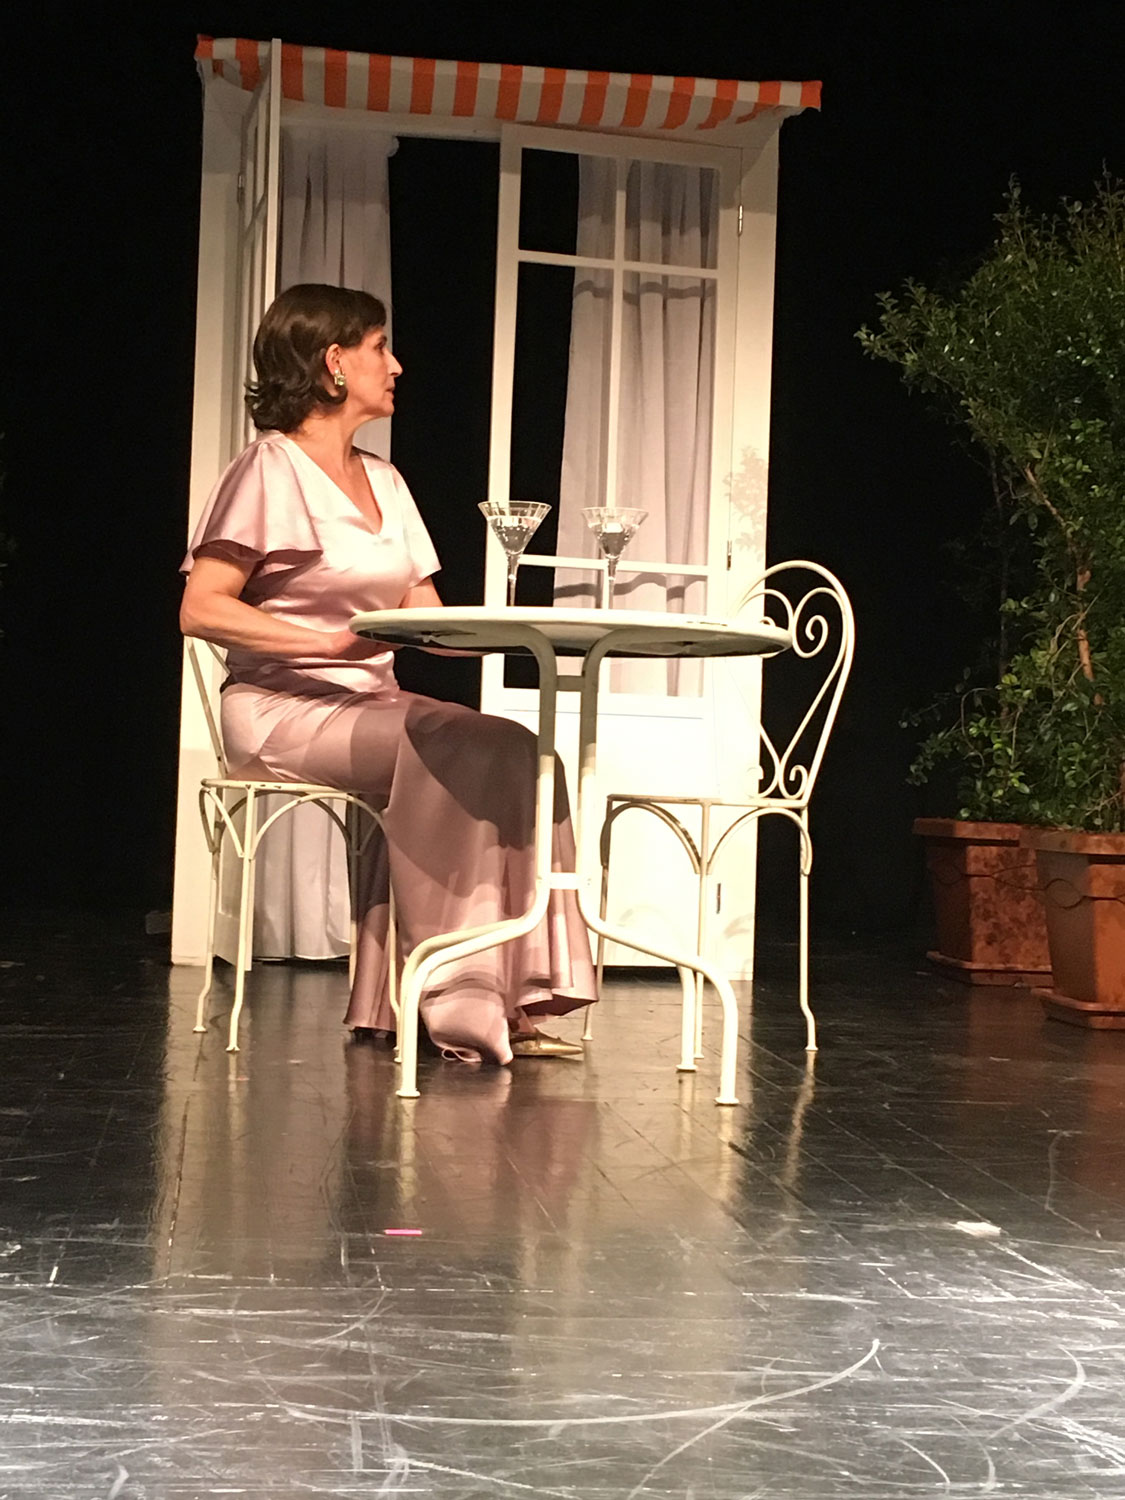 """<span  class=""""uc_style_uc_tiles_grid_image_elementor_uc_items_attribute_title"""" style=""""color:#ffffff;"""">Ana Paula Rocha - Teatro - Private Lives - Janeiro 2019 - 006</span>"""